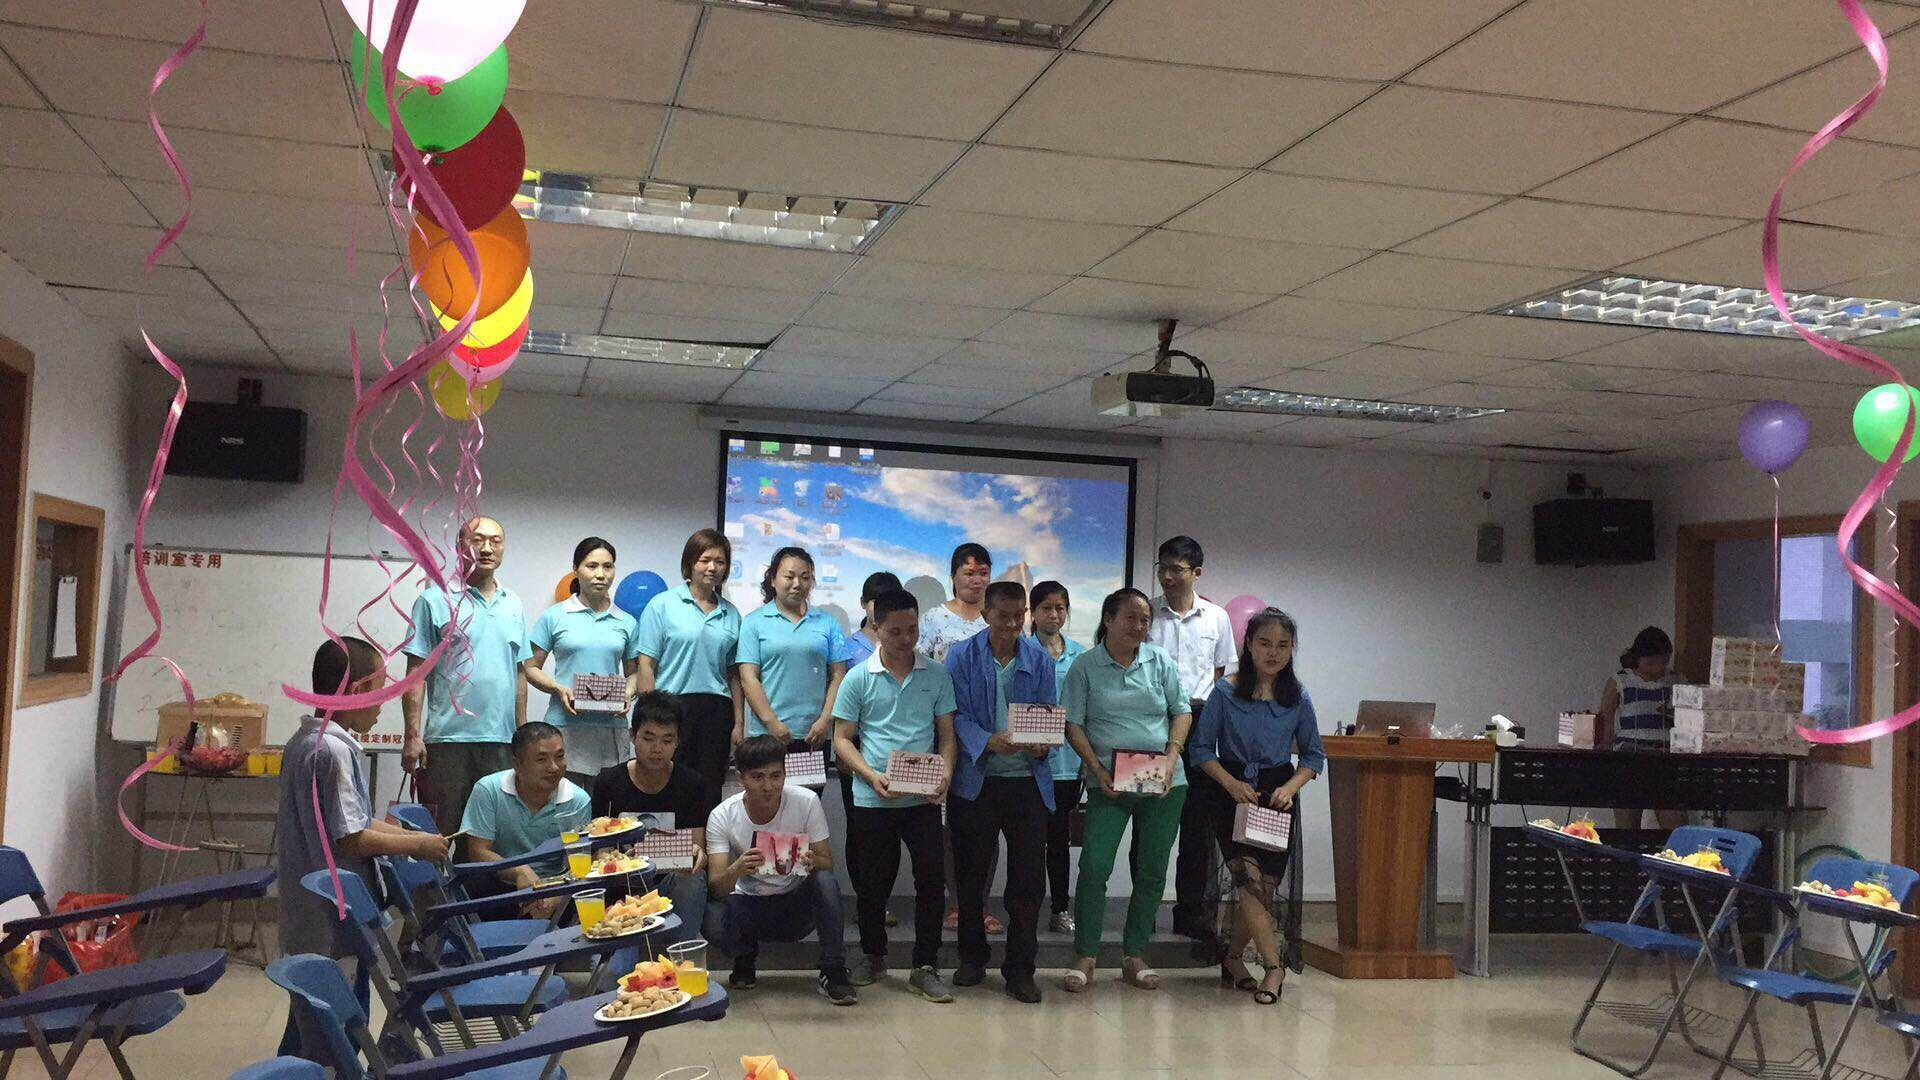 Trangjan Held a Birthday Party for Employees on Youth Day!